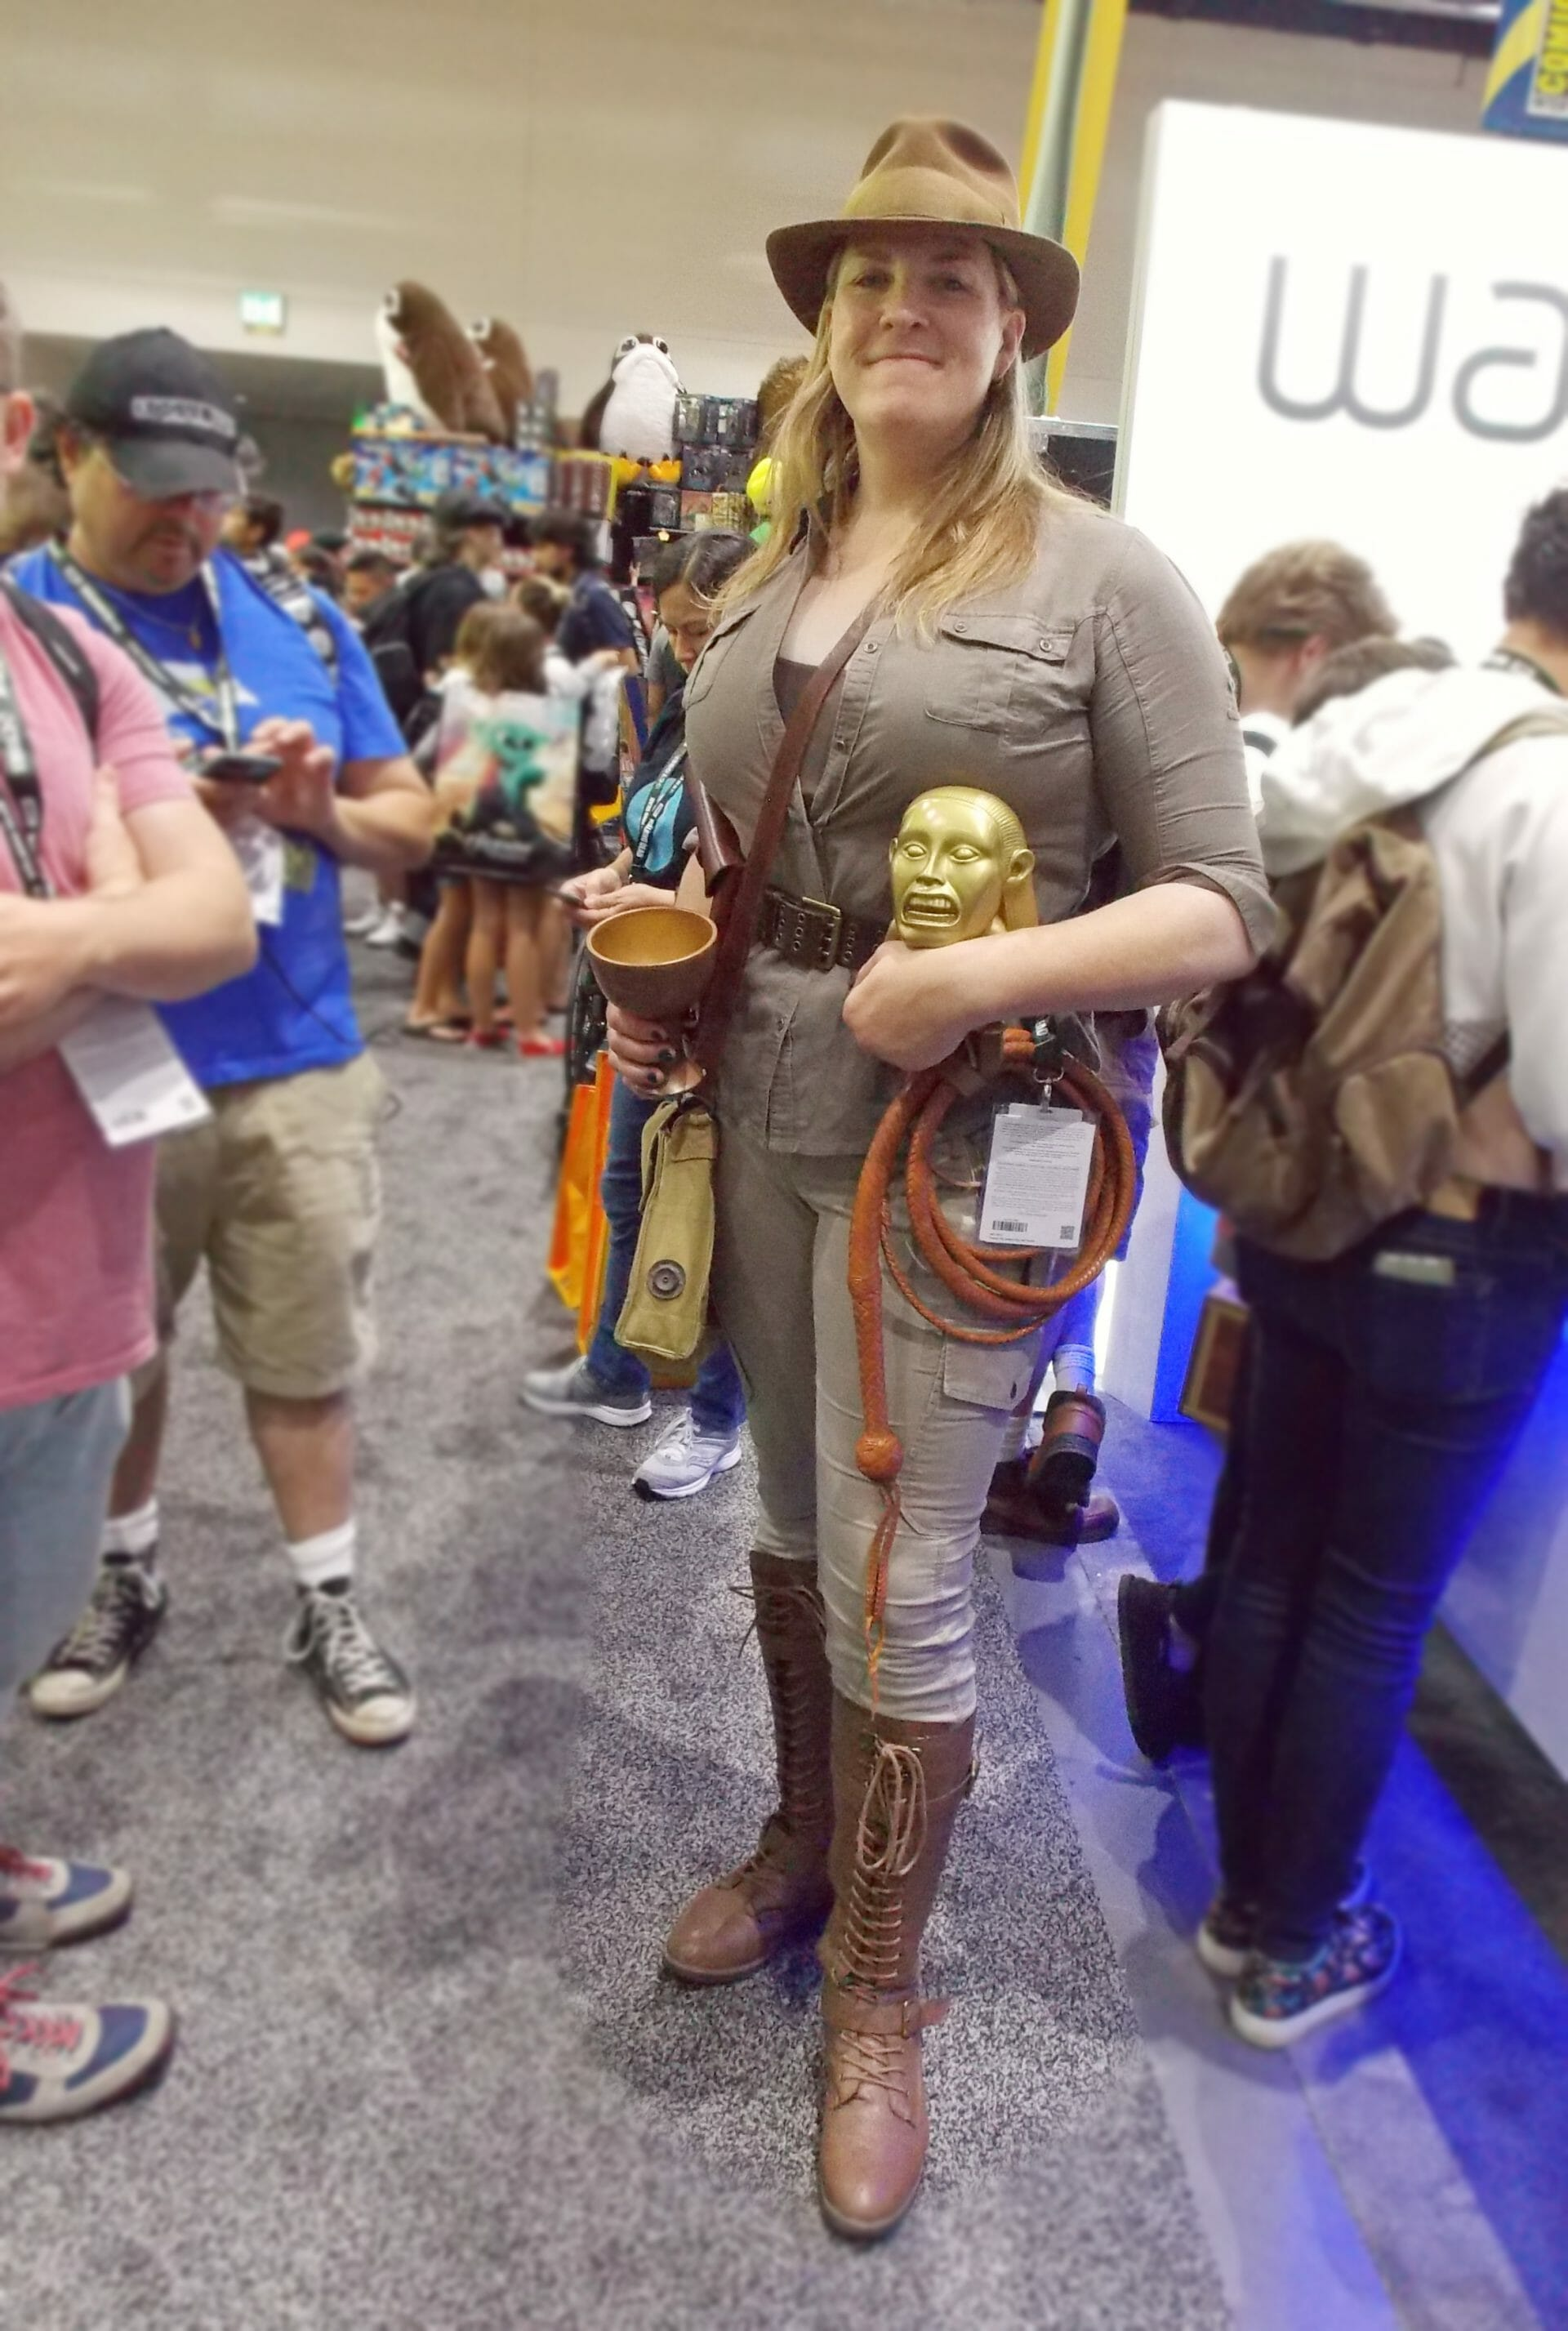 Rule 63 Indiana Jones